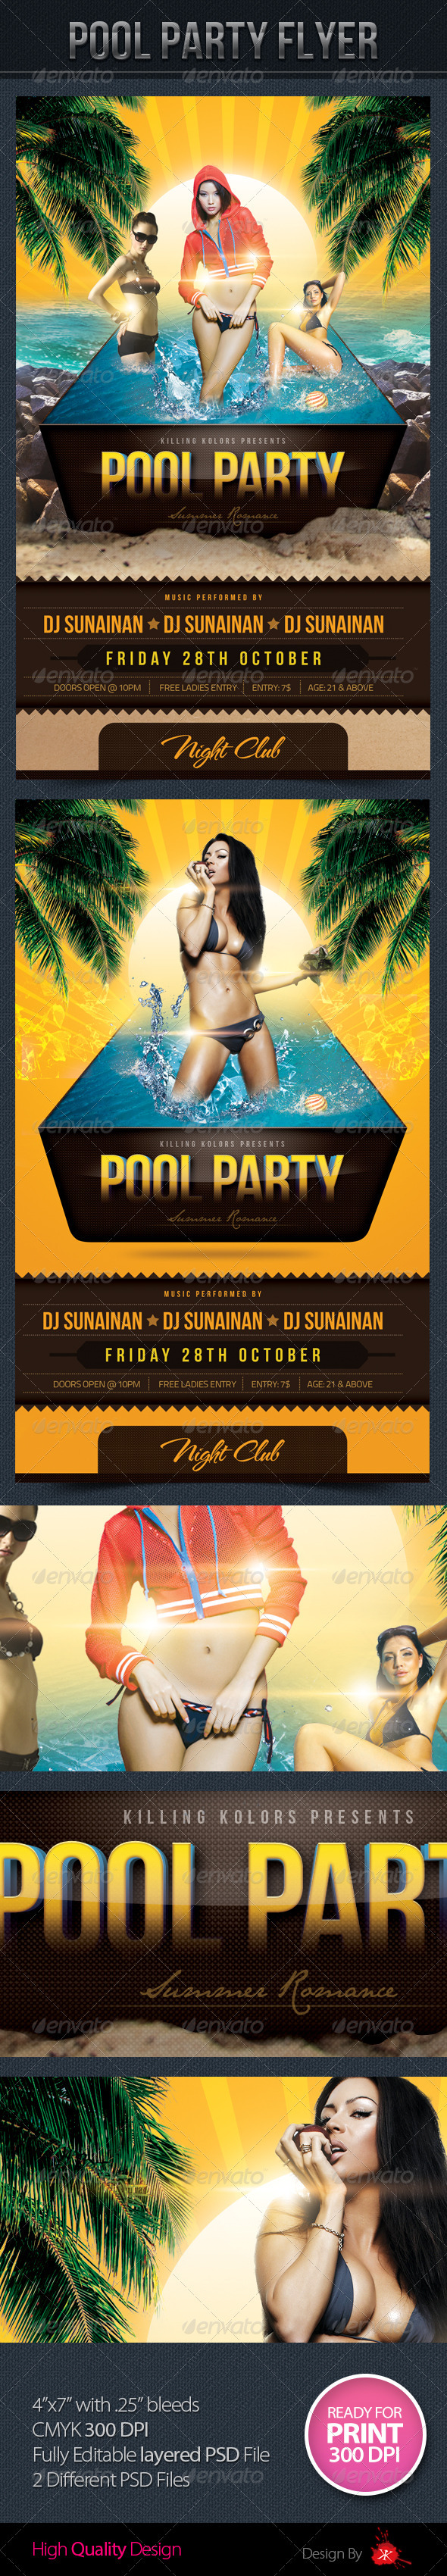 Pool Party Flyer - Print Templates